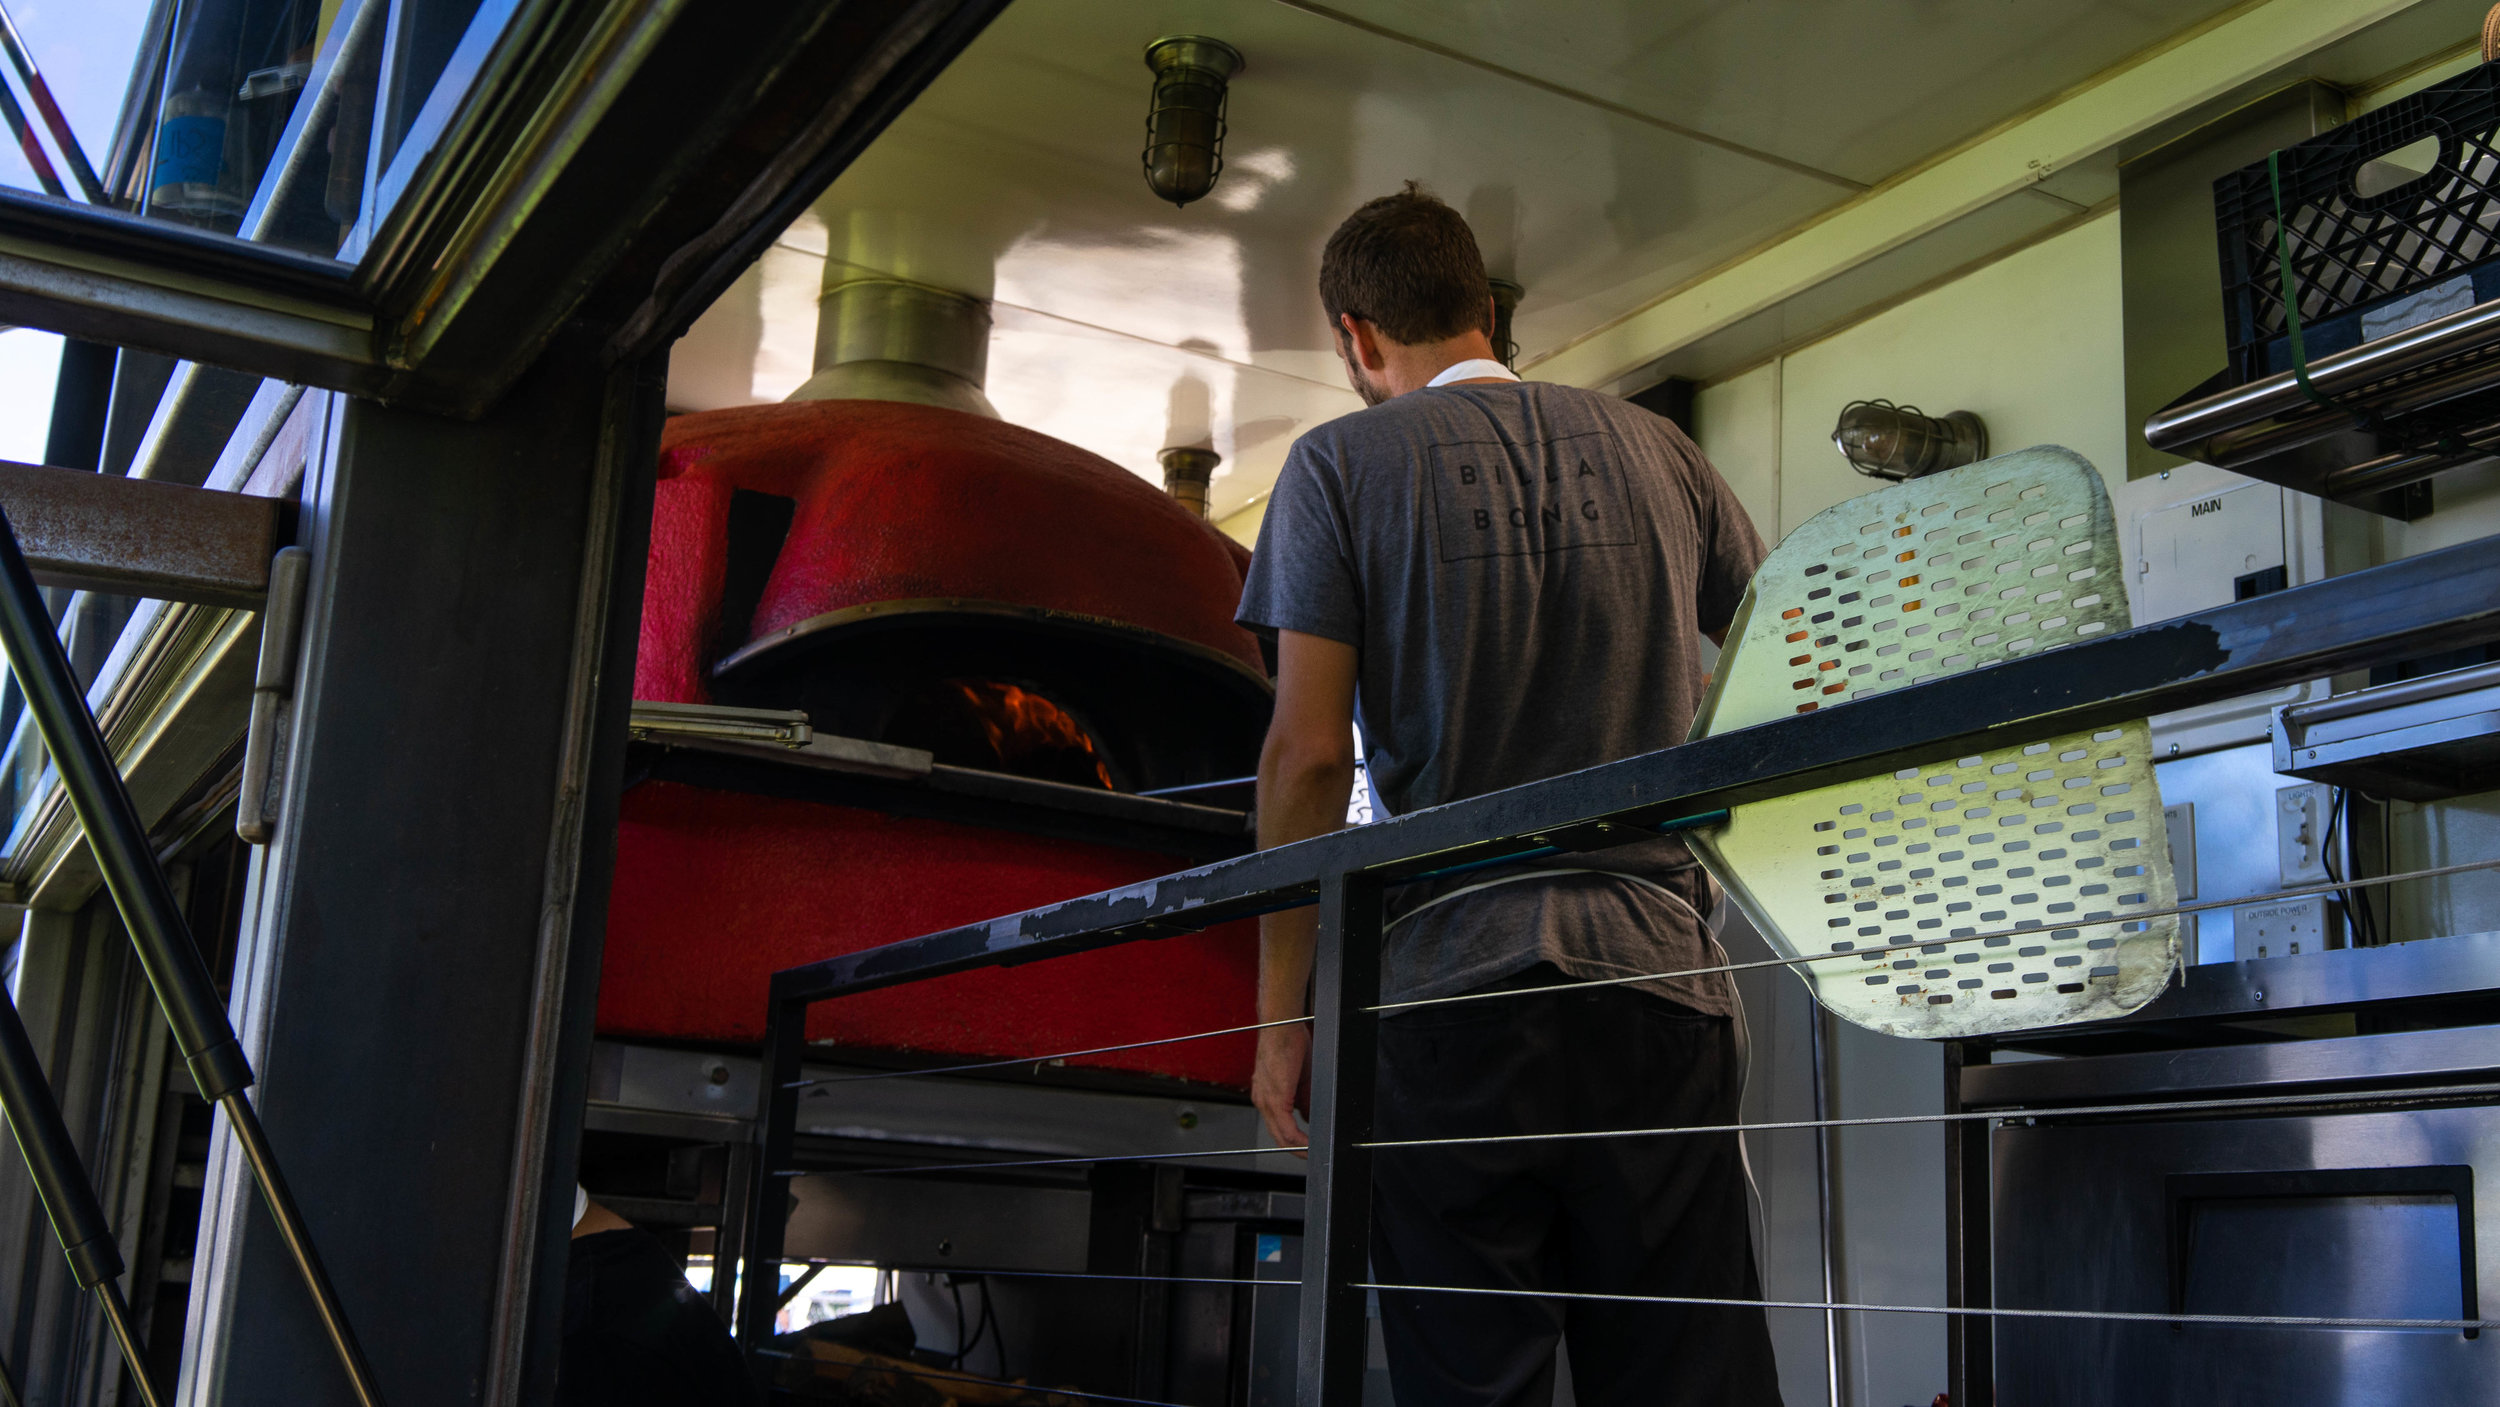 It's not everyday you can get a proper wood-fired pizza from a food truck.